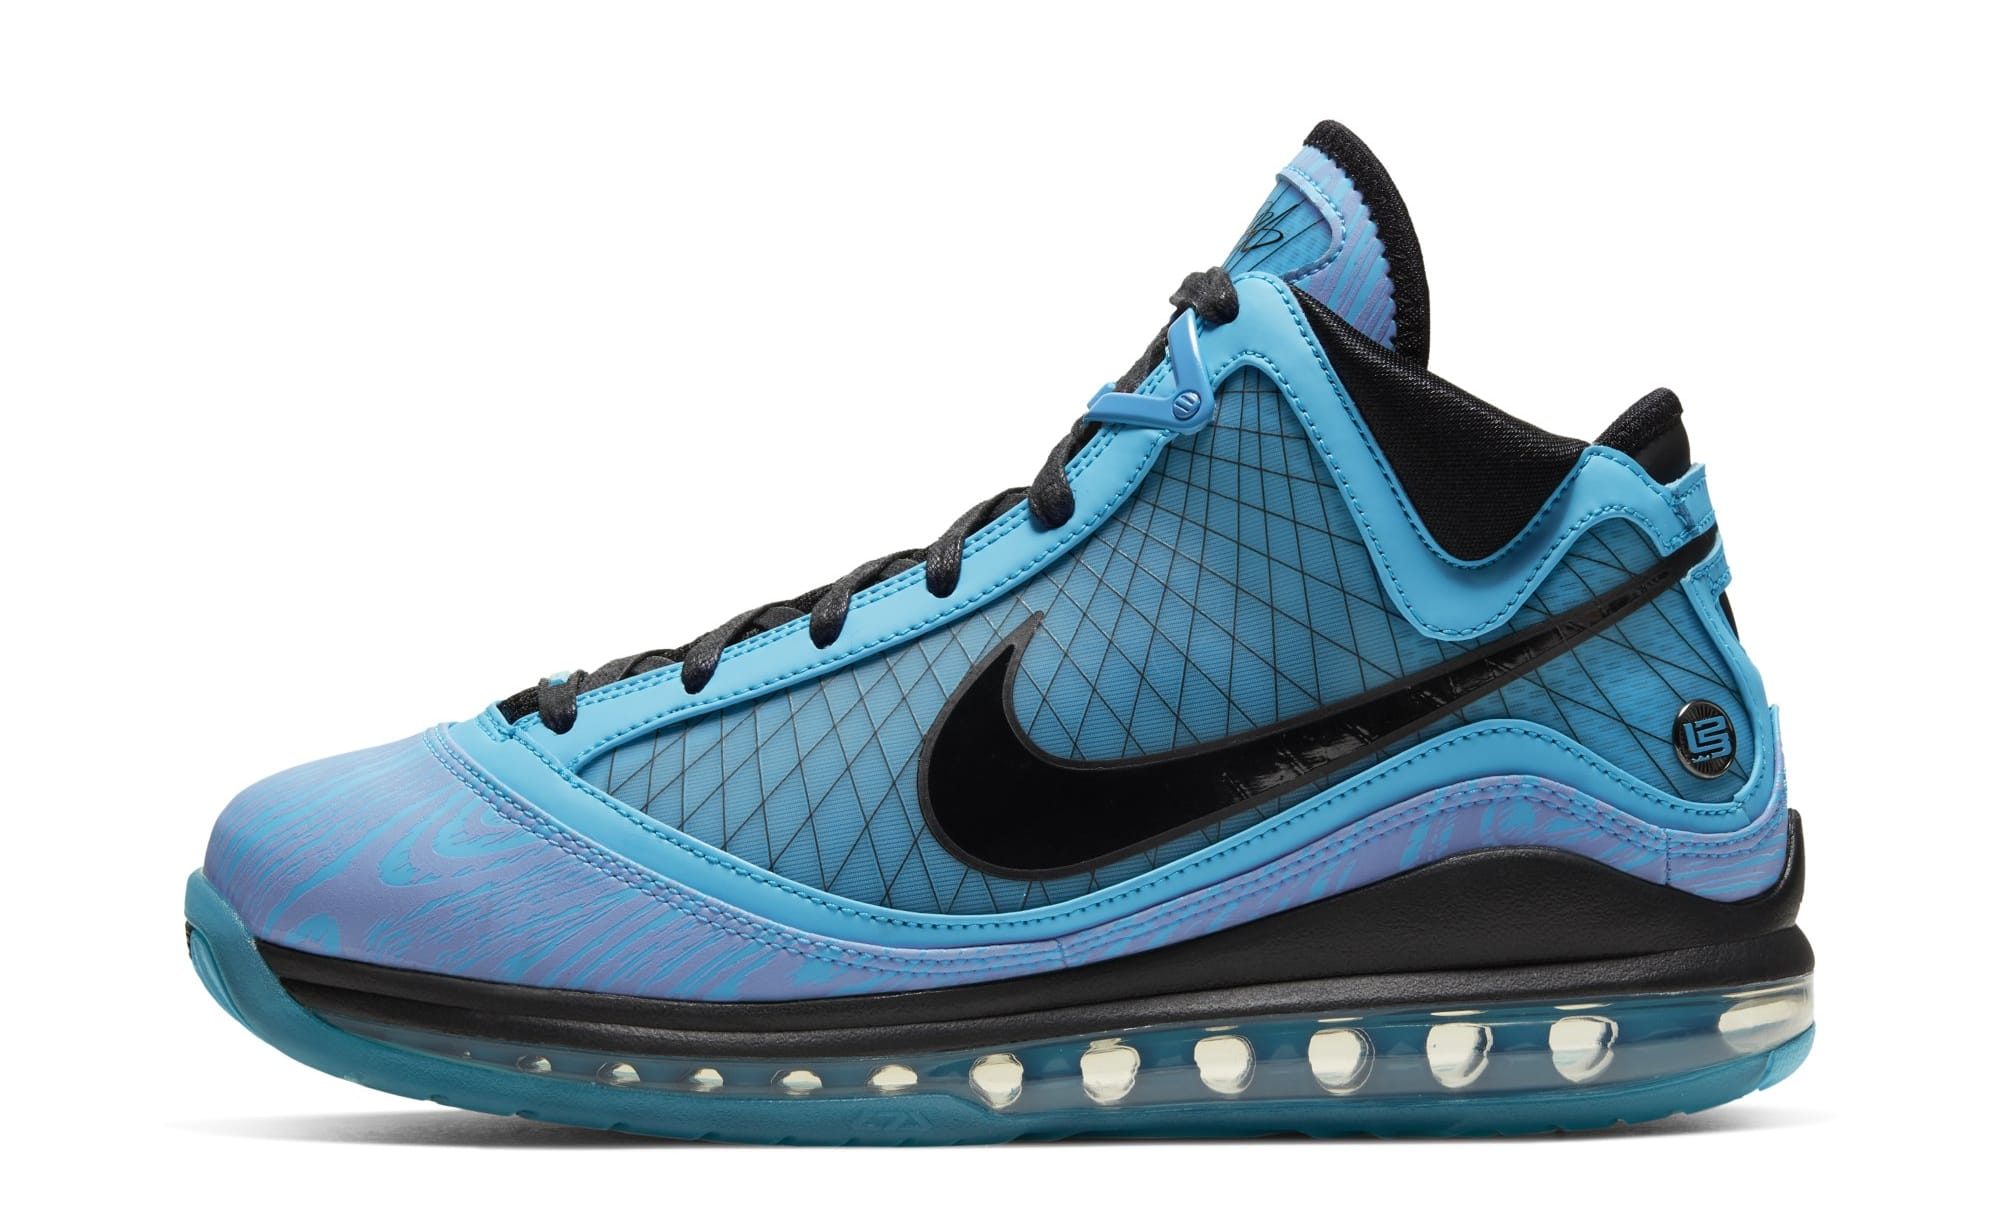 Nike LeBron 7 'All-Star' CU5646-400 (Lateral)